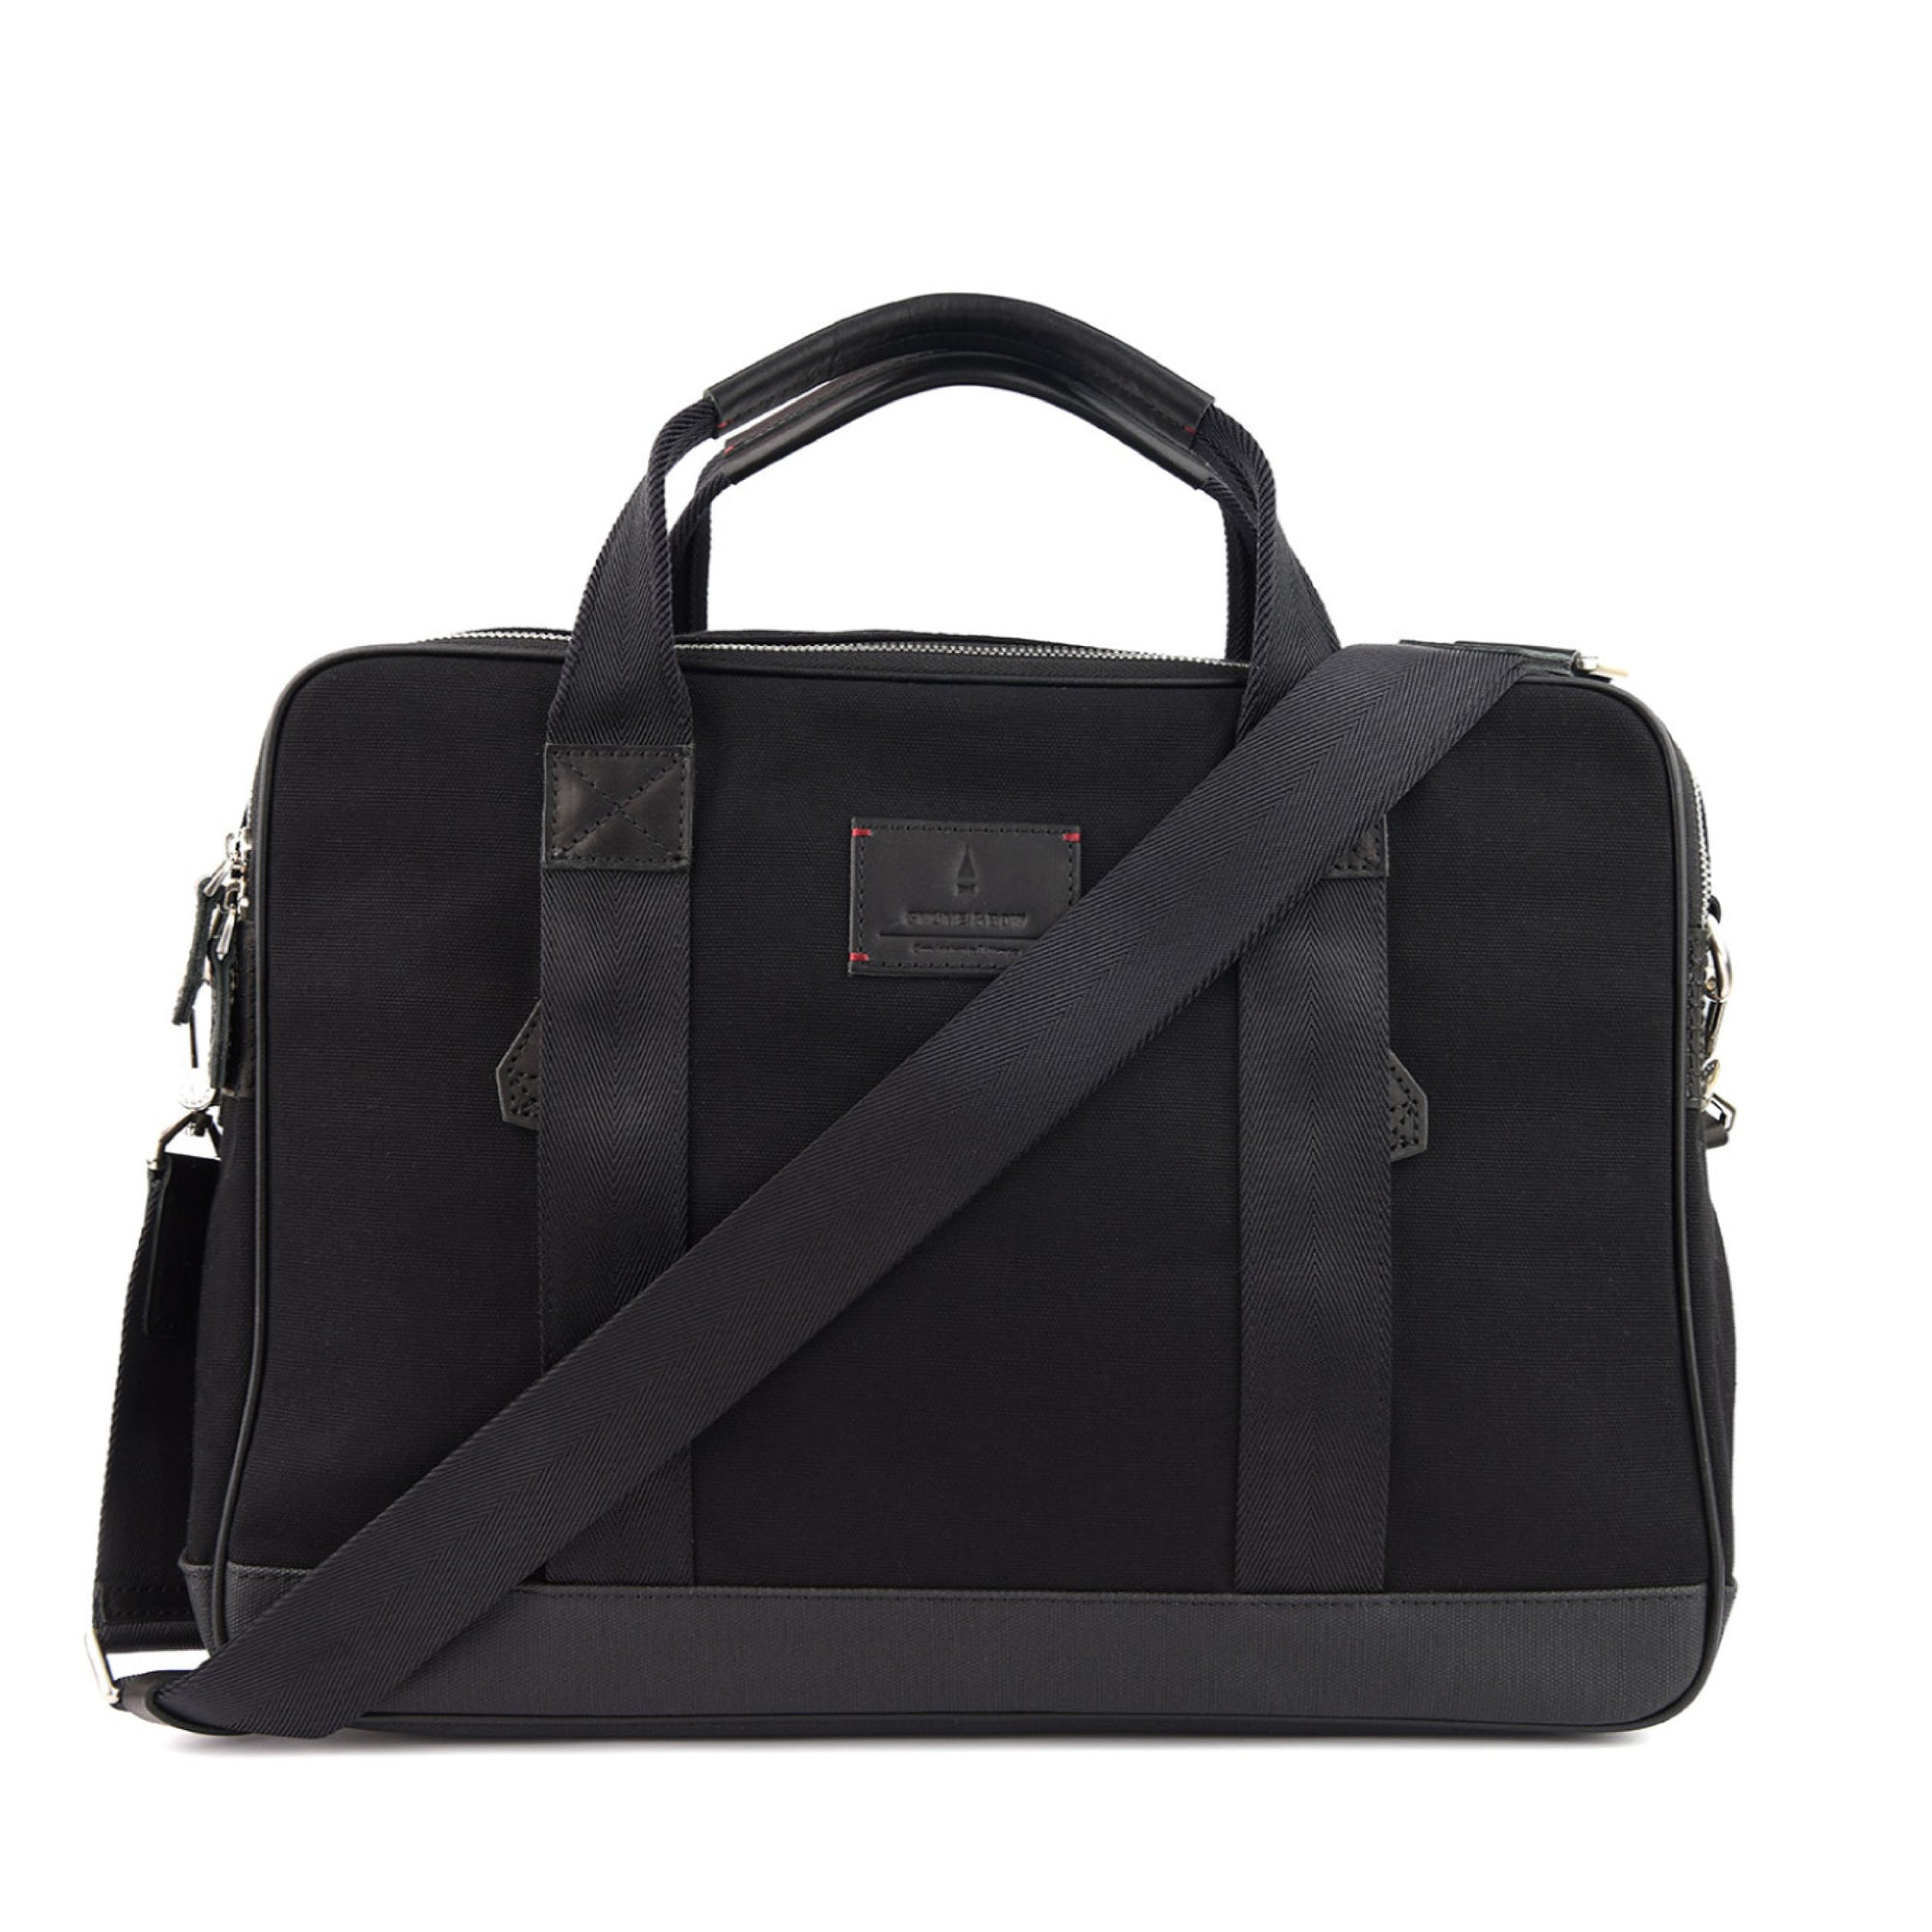 Coined as the workhorse of classic office bags, the Aspen Briefcase in Jet Black is made from full-grained leather, organic canvas and YKK Japan zippers. This briefcase will stand by you through boardroom wars as it would those weekend escapades. Well gladly, everything in between too, if you must.